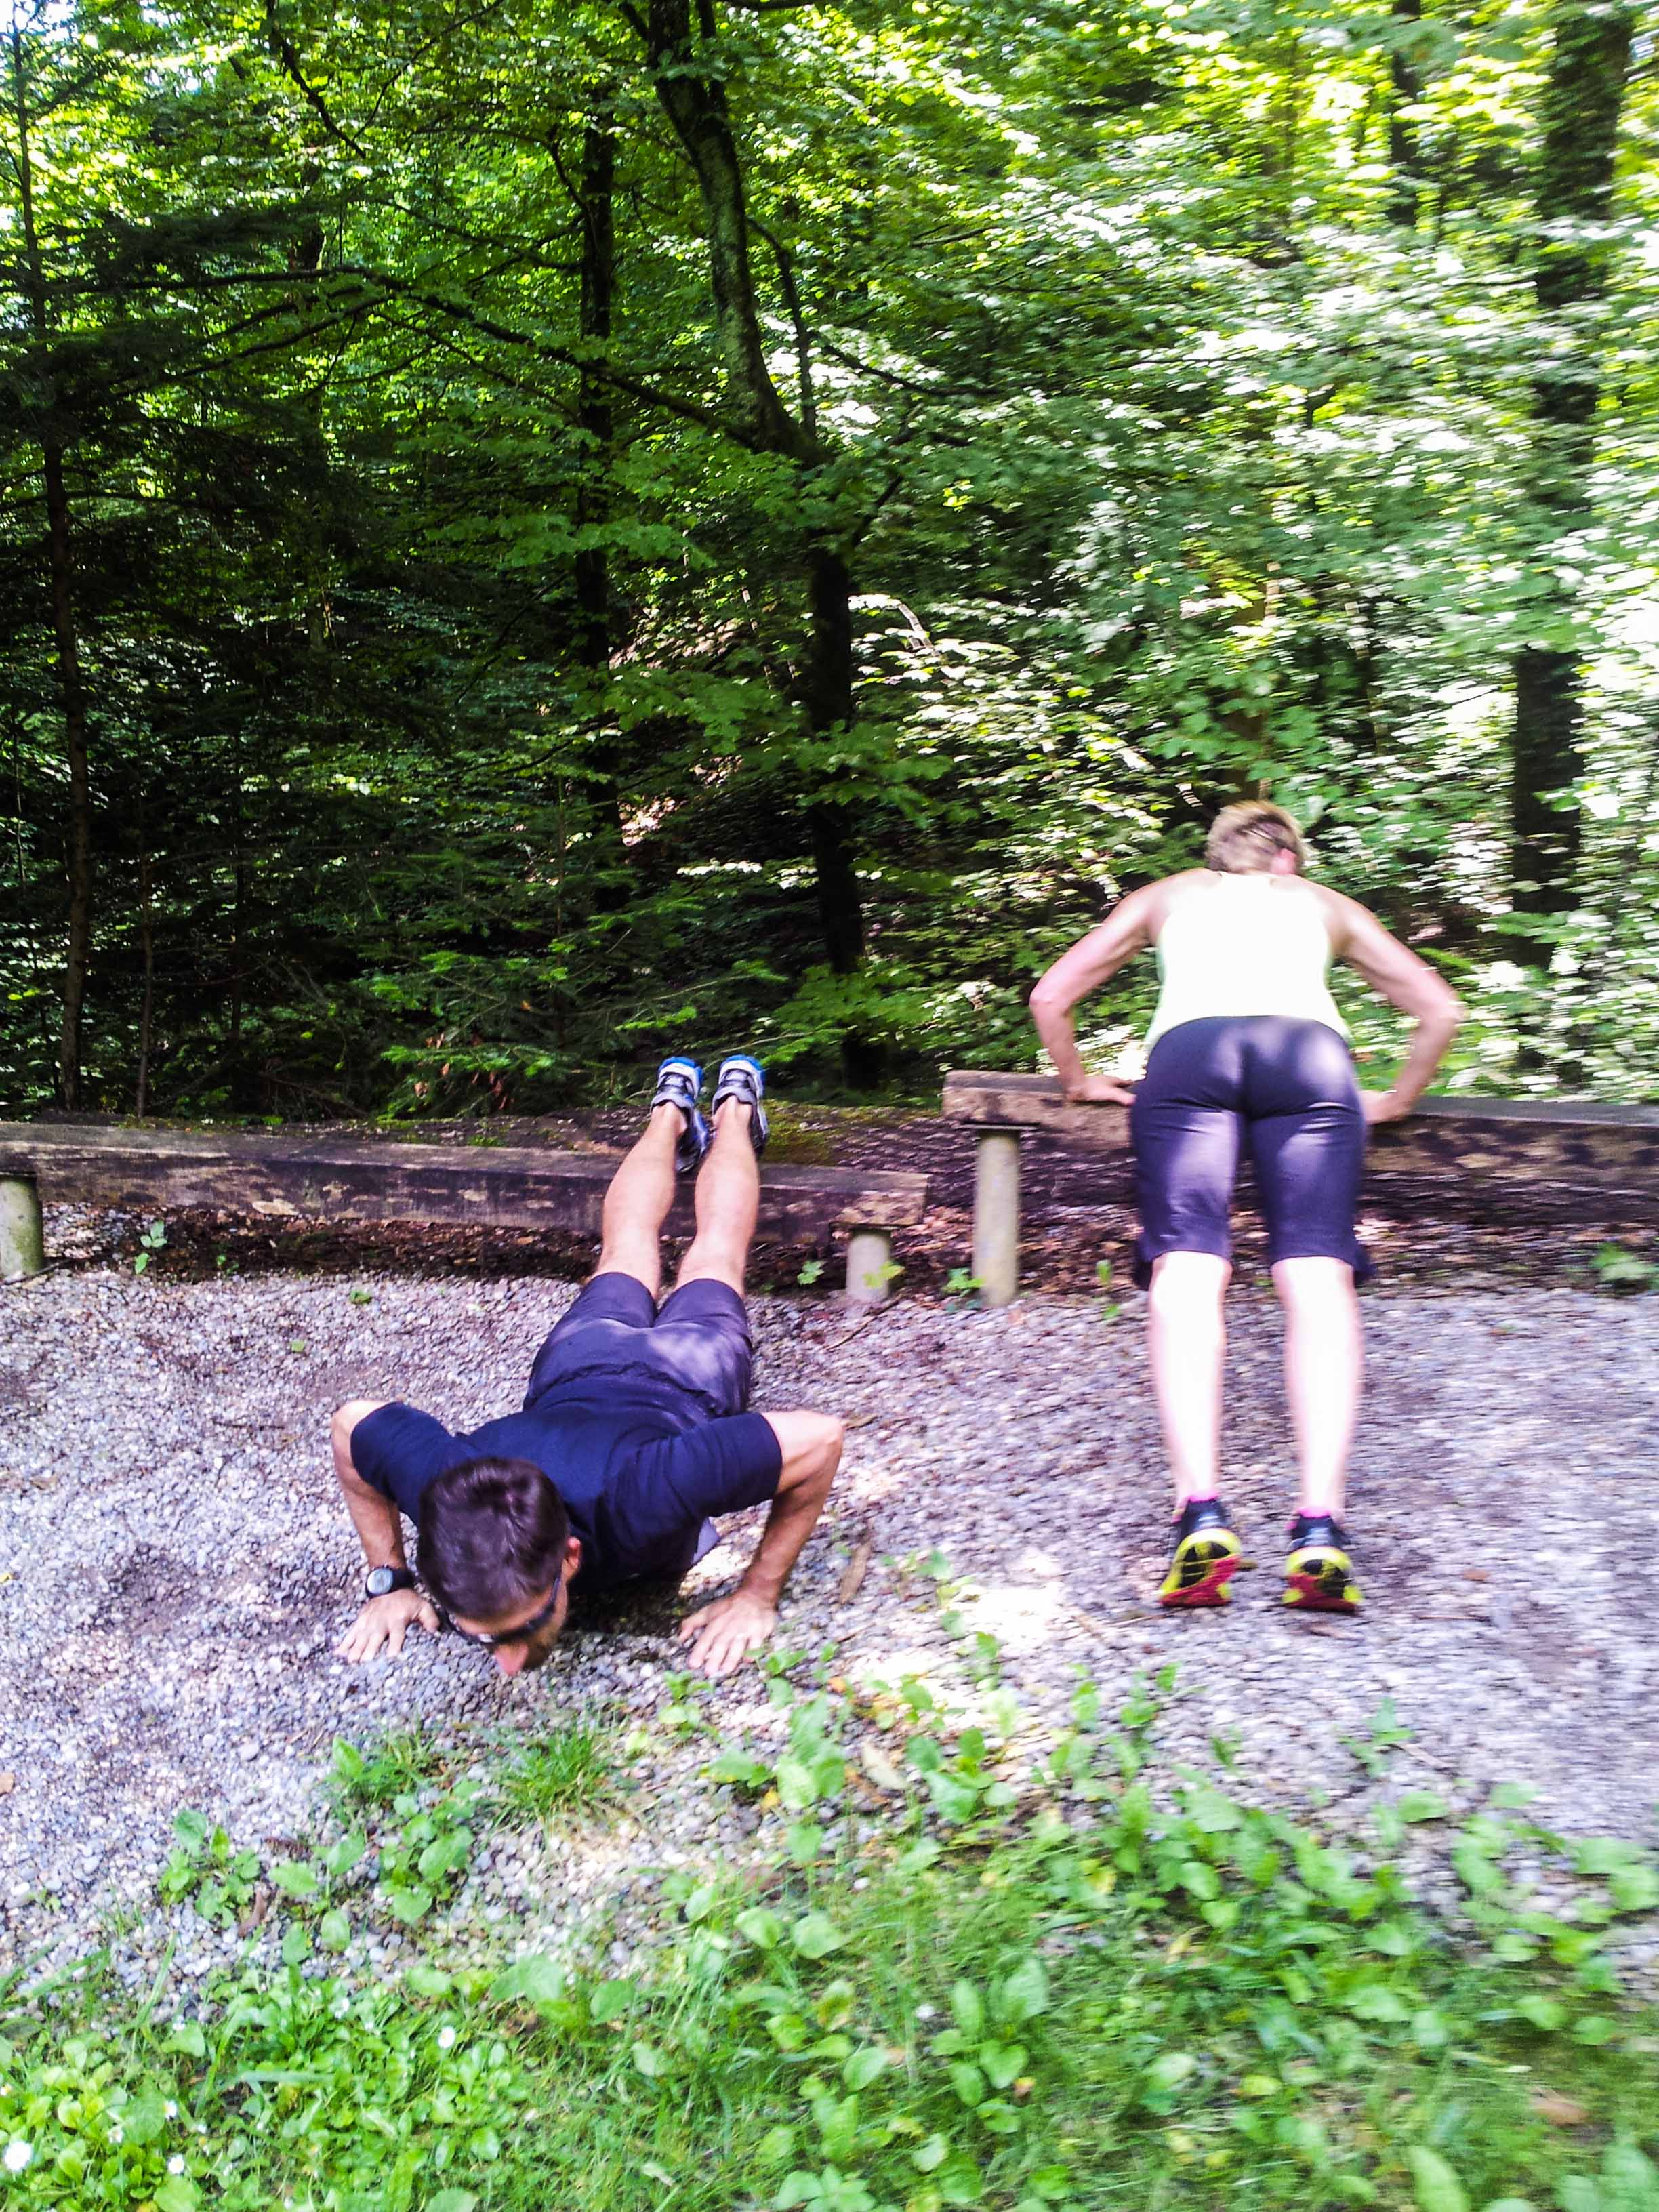 The Woods Wood Be Quiet If No Birds Sang Except The Best: A Workout In The Woods